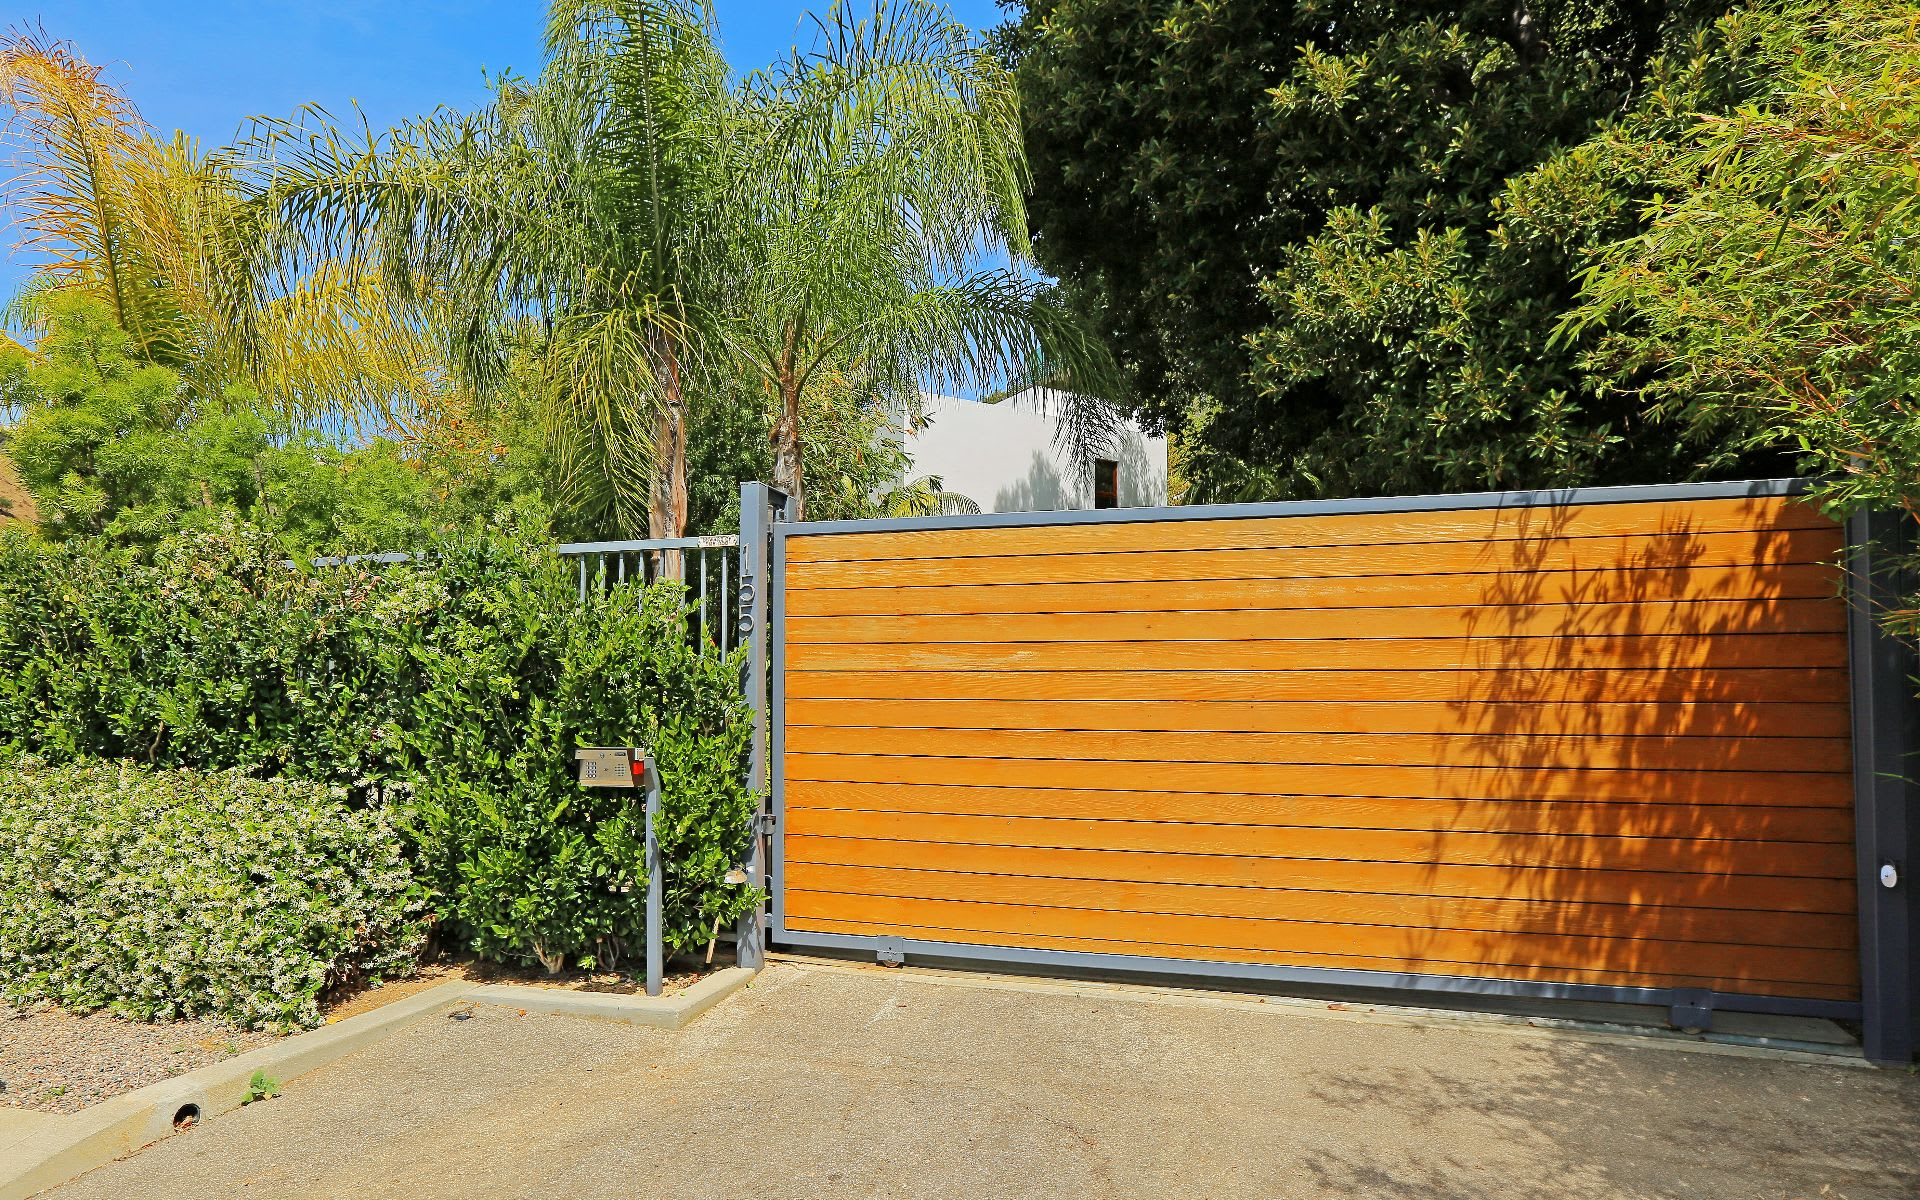 Additional photo for property listing at 1551 Viewsite Dr 1551 Viewsite Dr Los Angeles, California,90069 Stati Uniti